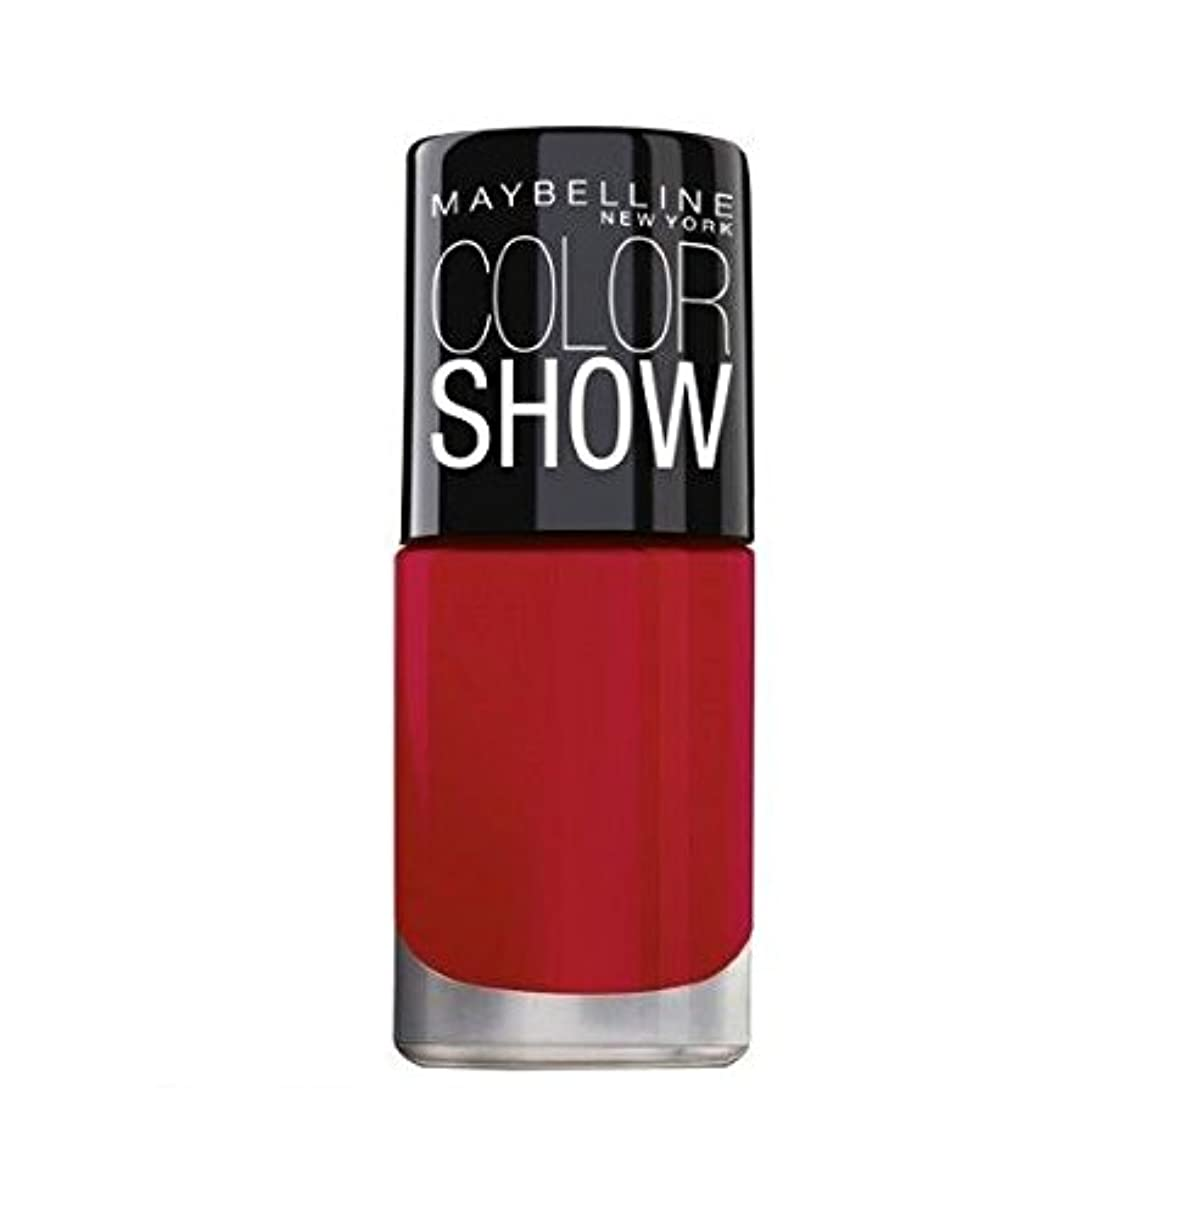 呪われた材料エンティティMaybelline Color Show Bright Sparks, Power of Red 708, 6ml